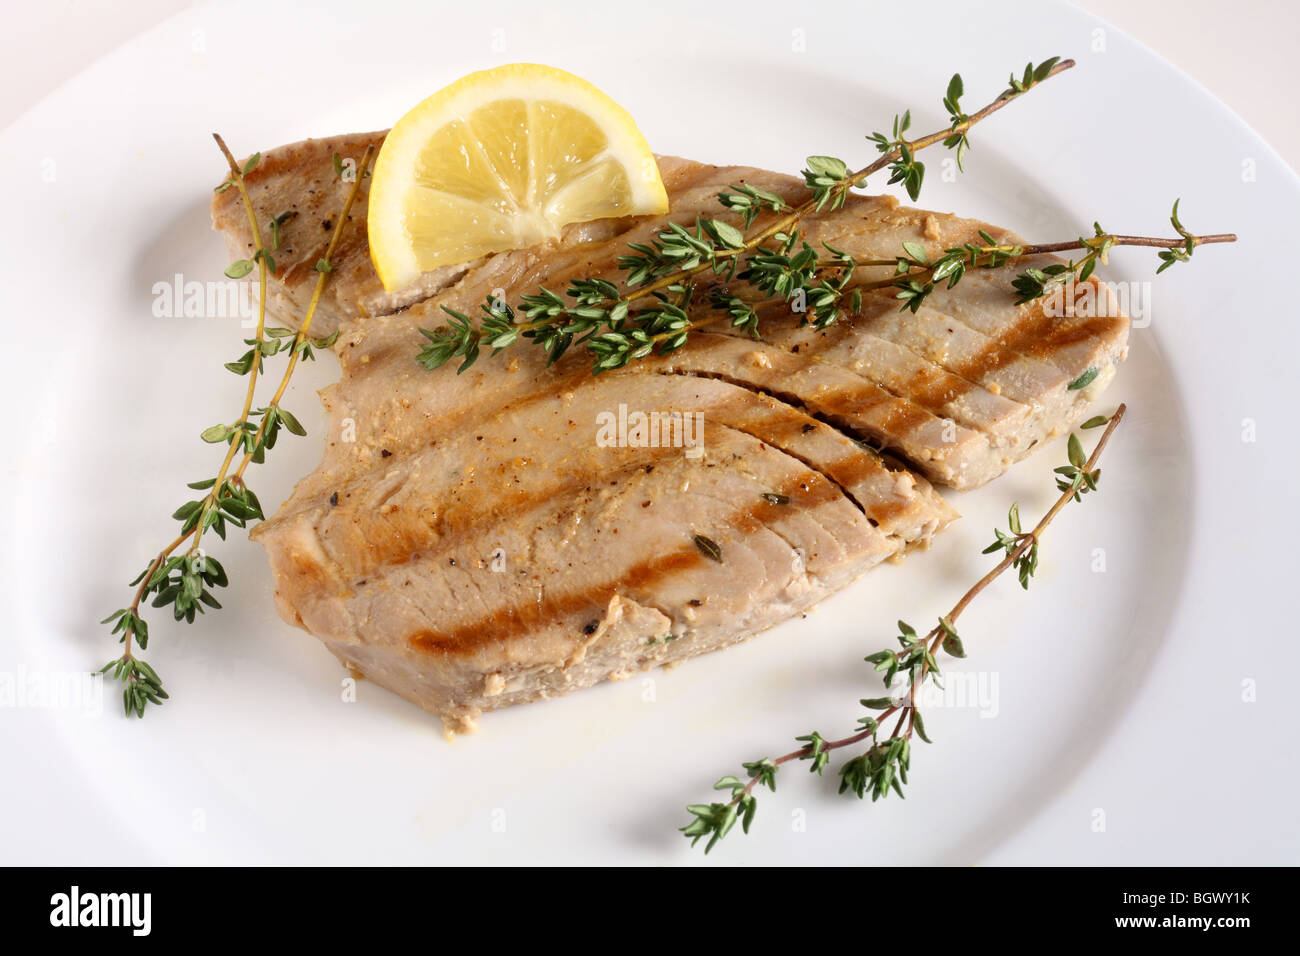 A grilled tuna steak, garnished with sprigs of thyme, on a plate with a wedge of lemon - Stock Image